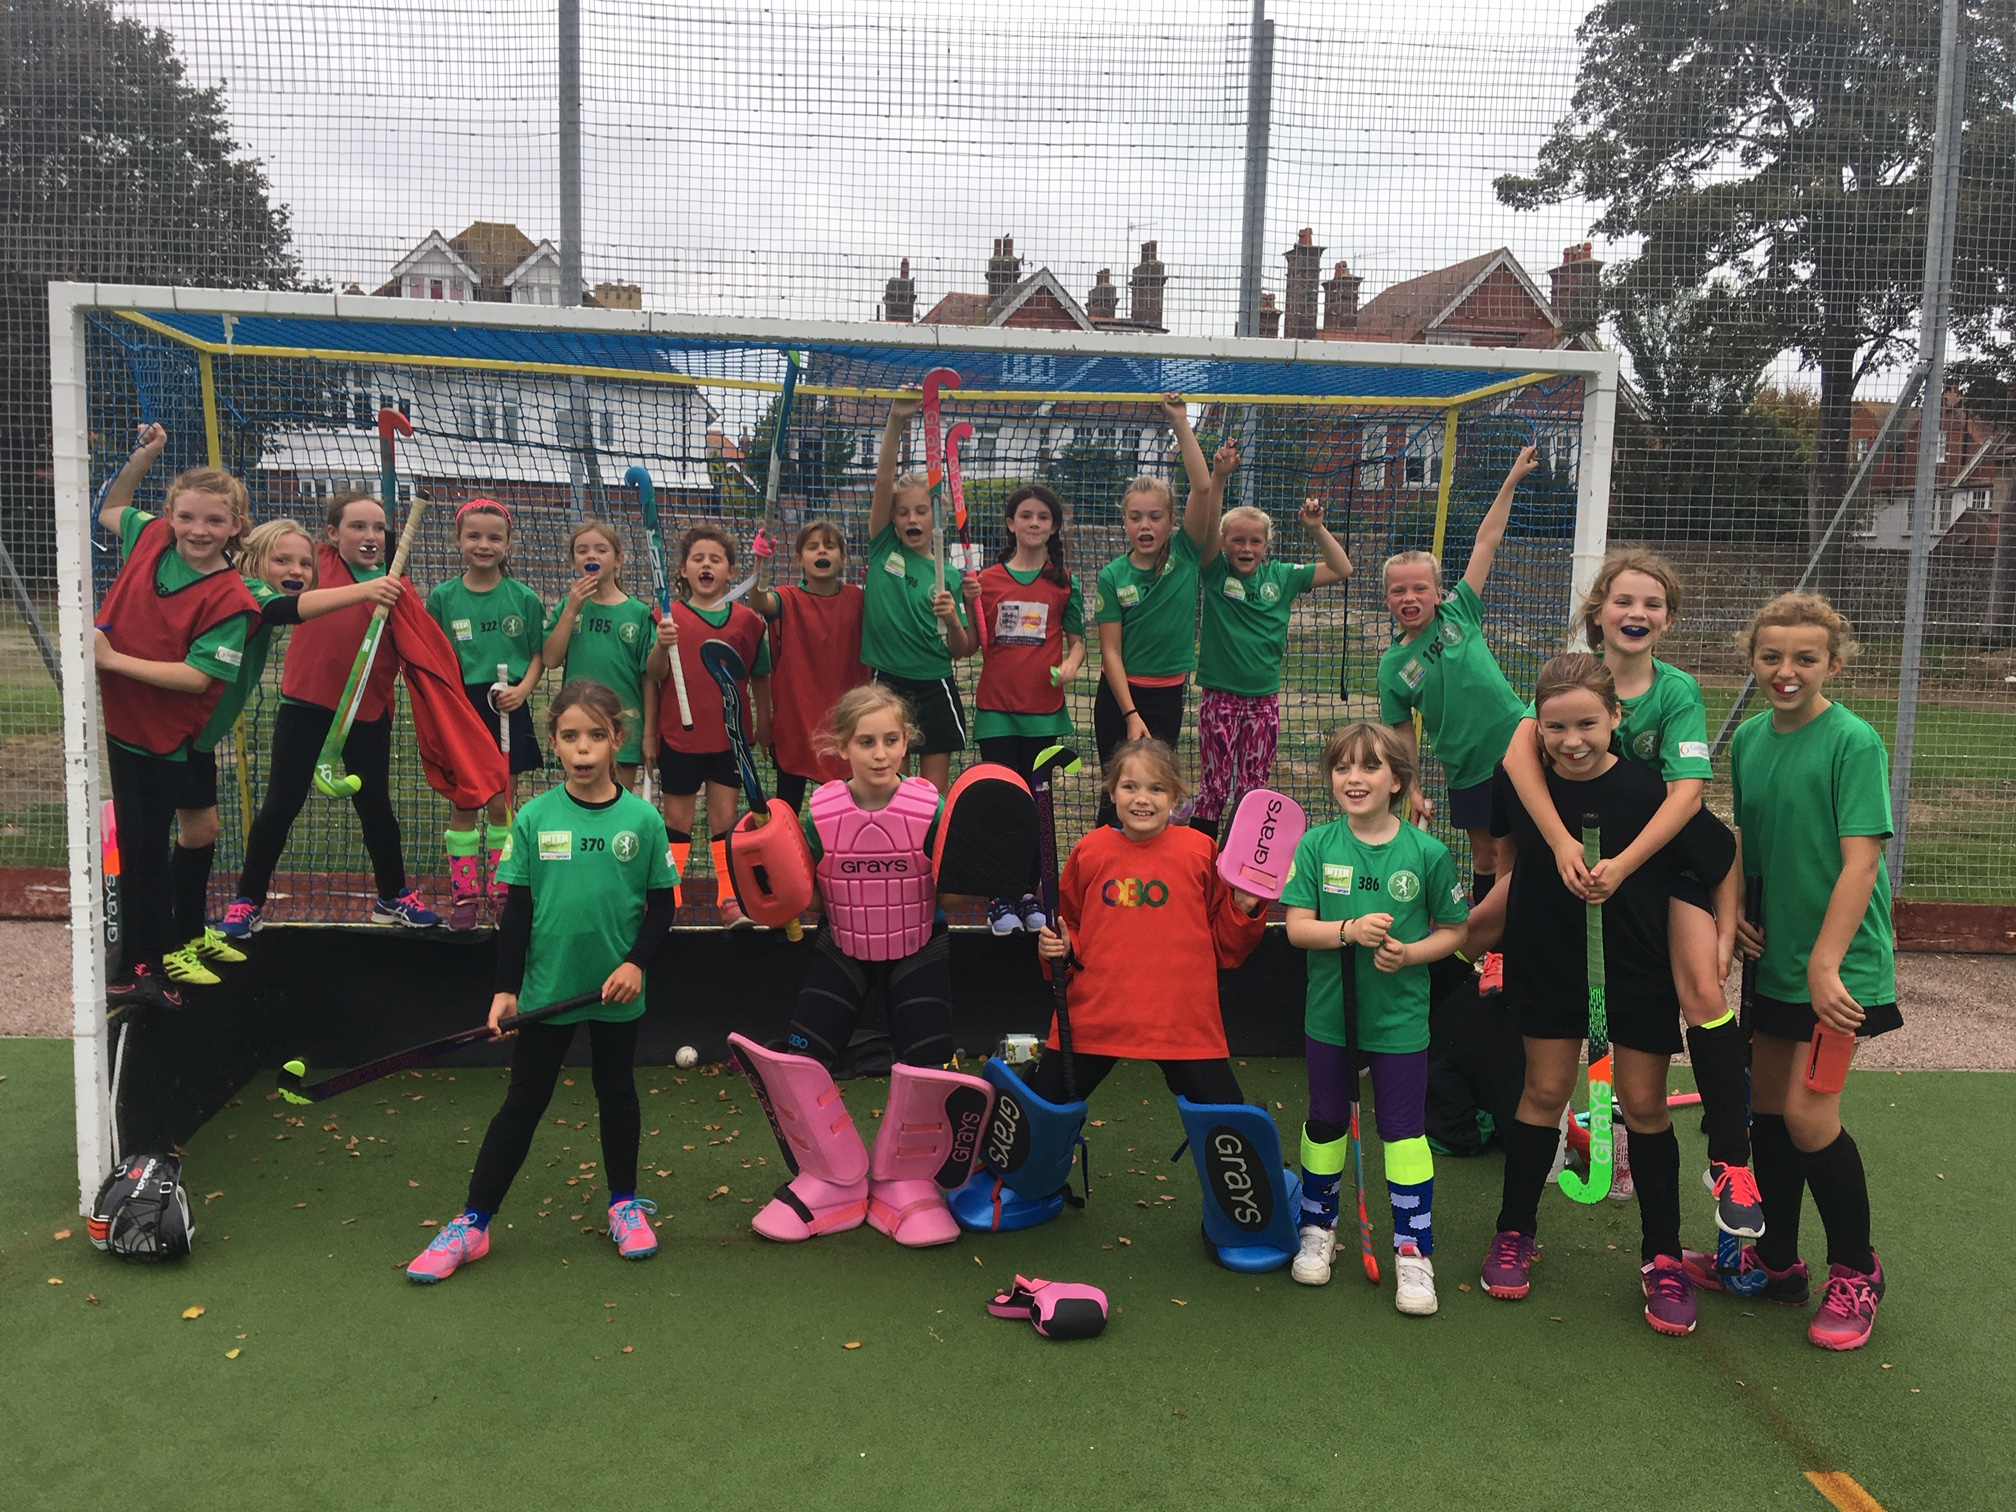 Ron Easton Tournament Vs Lewes Hc U10 Girls Leopards 19 November